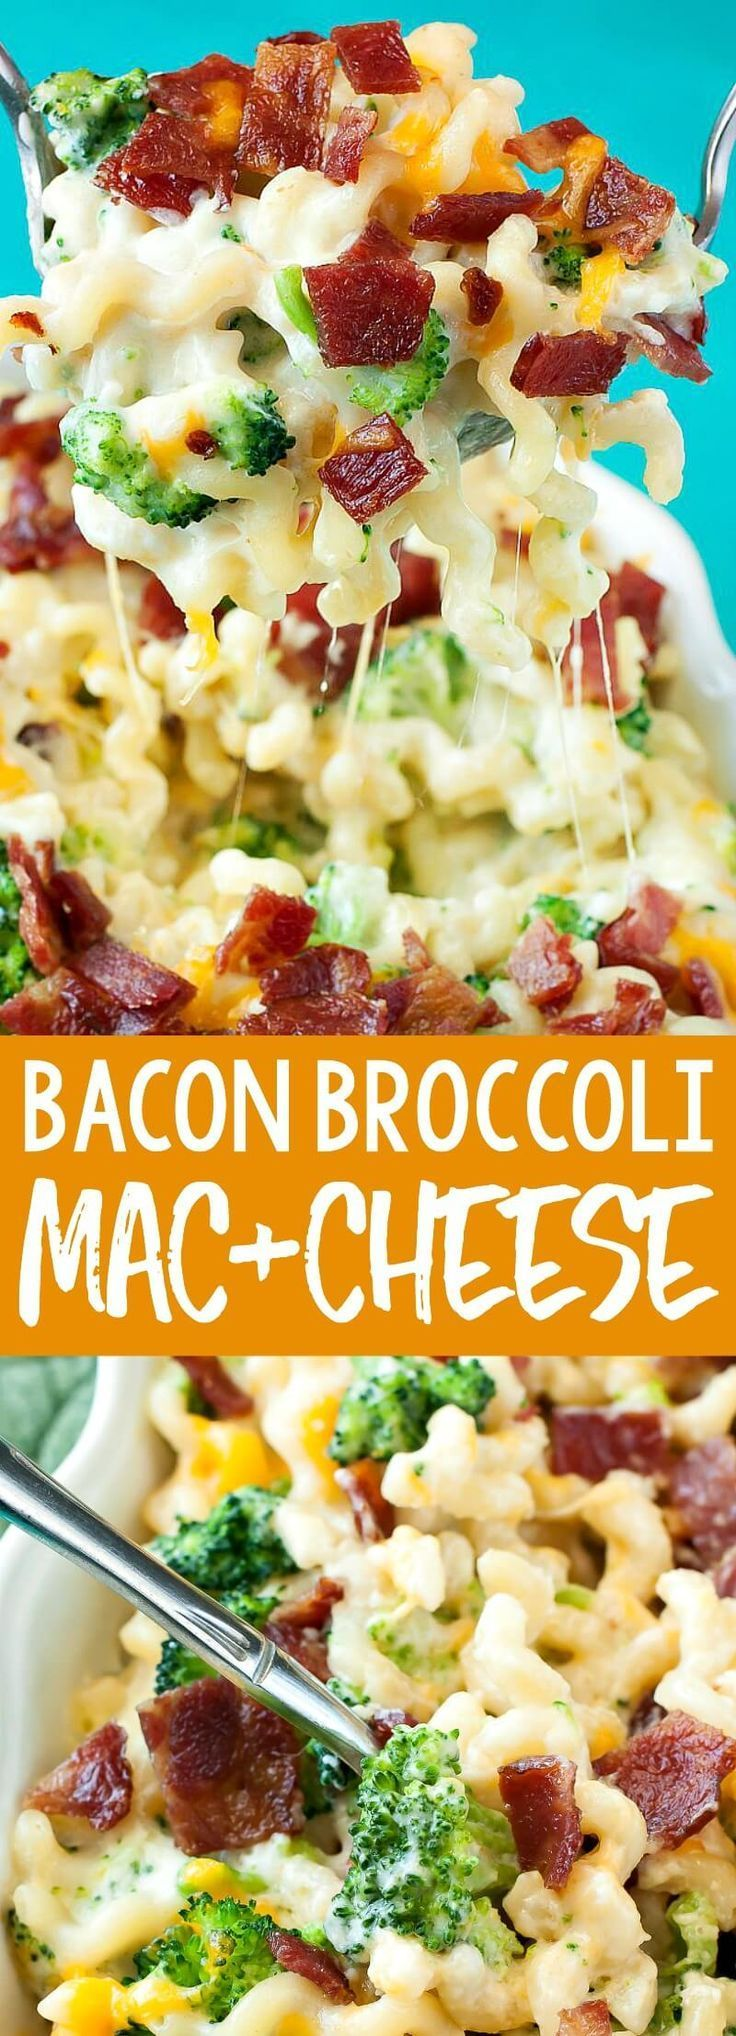 Bacon Broccoli Mac and Cheese Bacon broccoli mac and cheese loaded with gorgeous green broccoli and topped with crispy bacon... this cheesy comfort food is ready to rock your face off! My family goes nuts over this easy cheesy casserole!